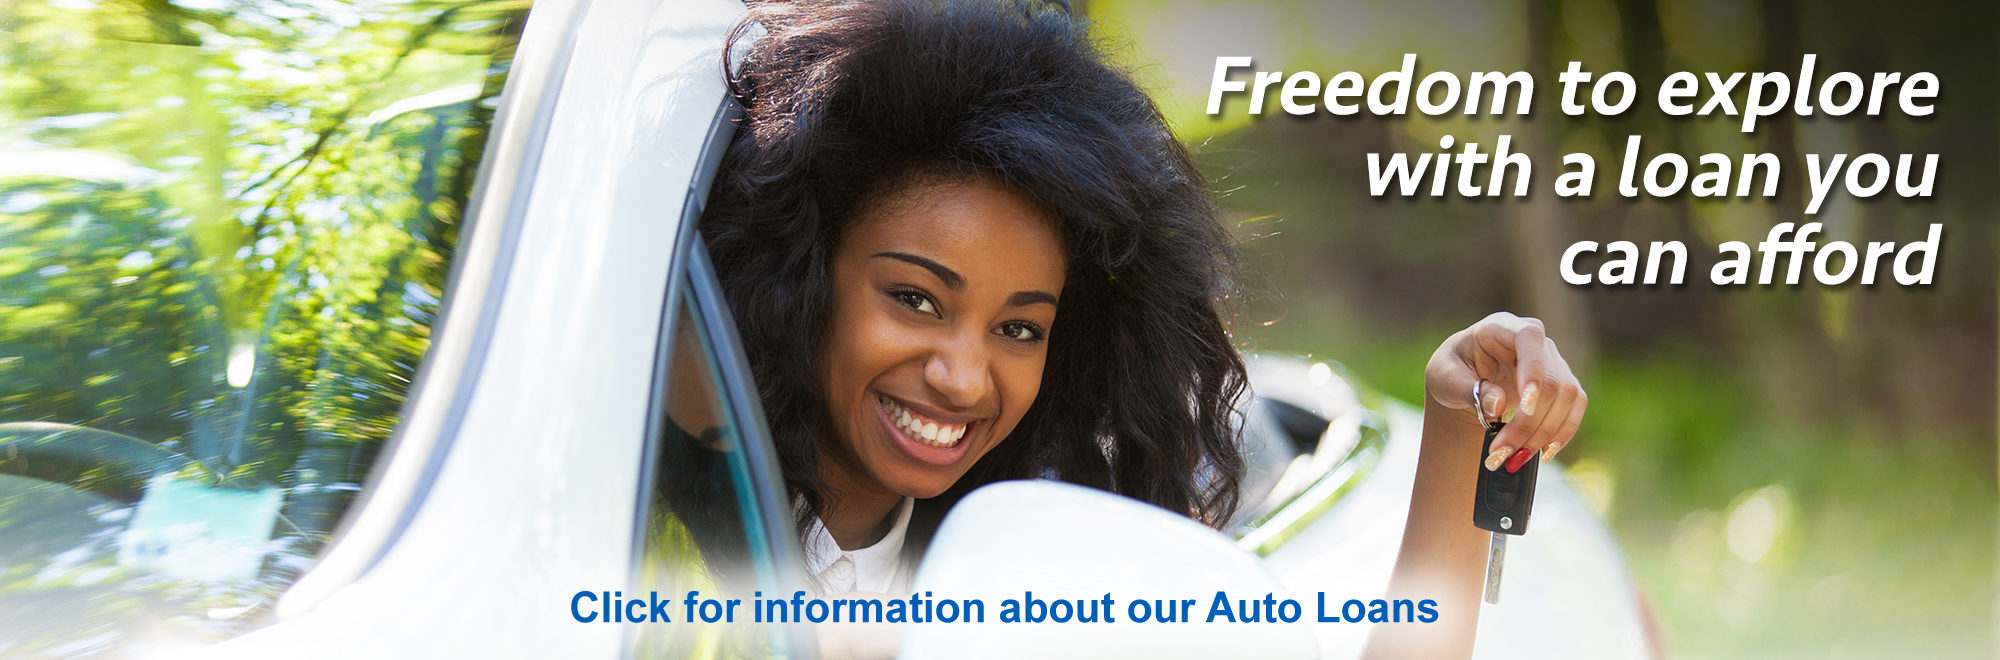 Freedom to explore with a loan you can afford. Learn more about our auto loans.